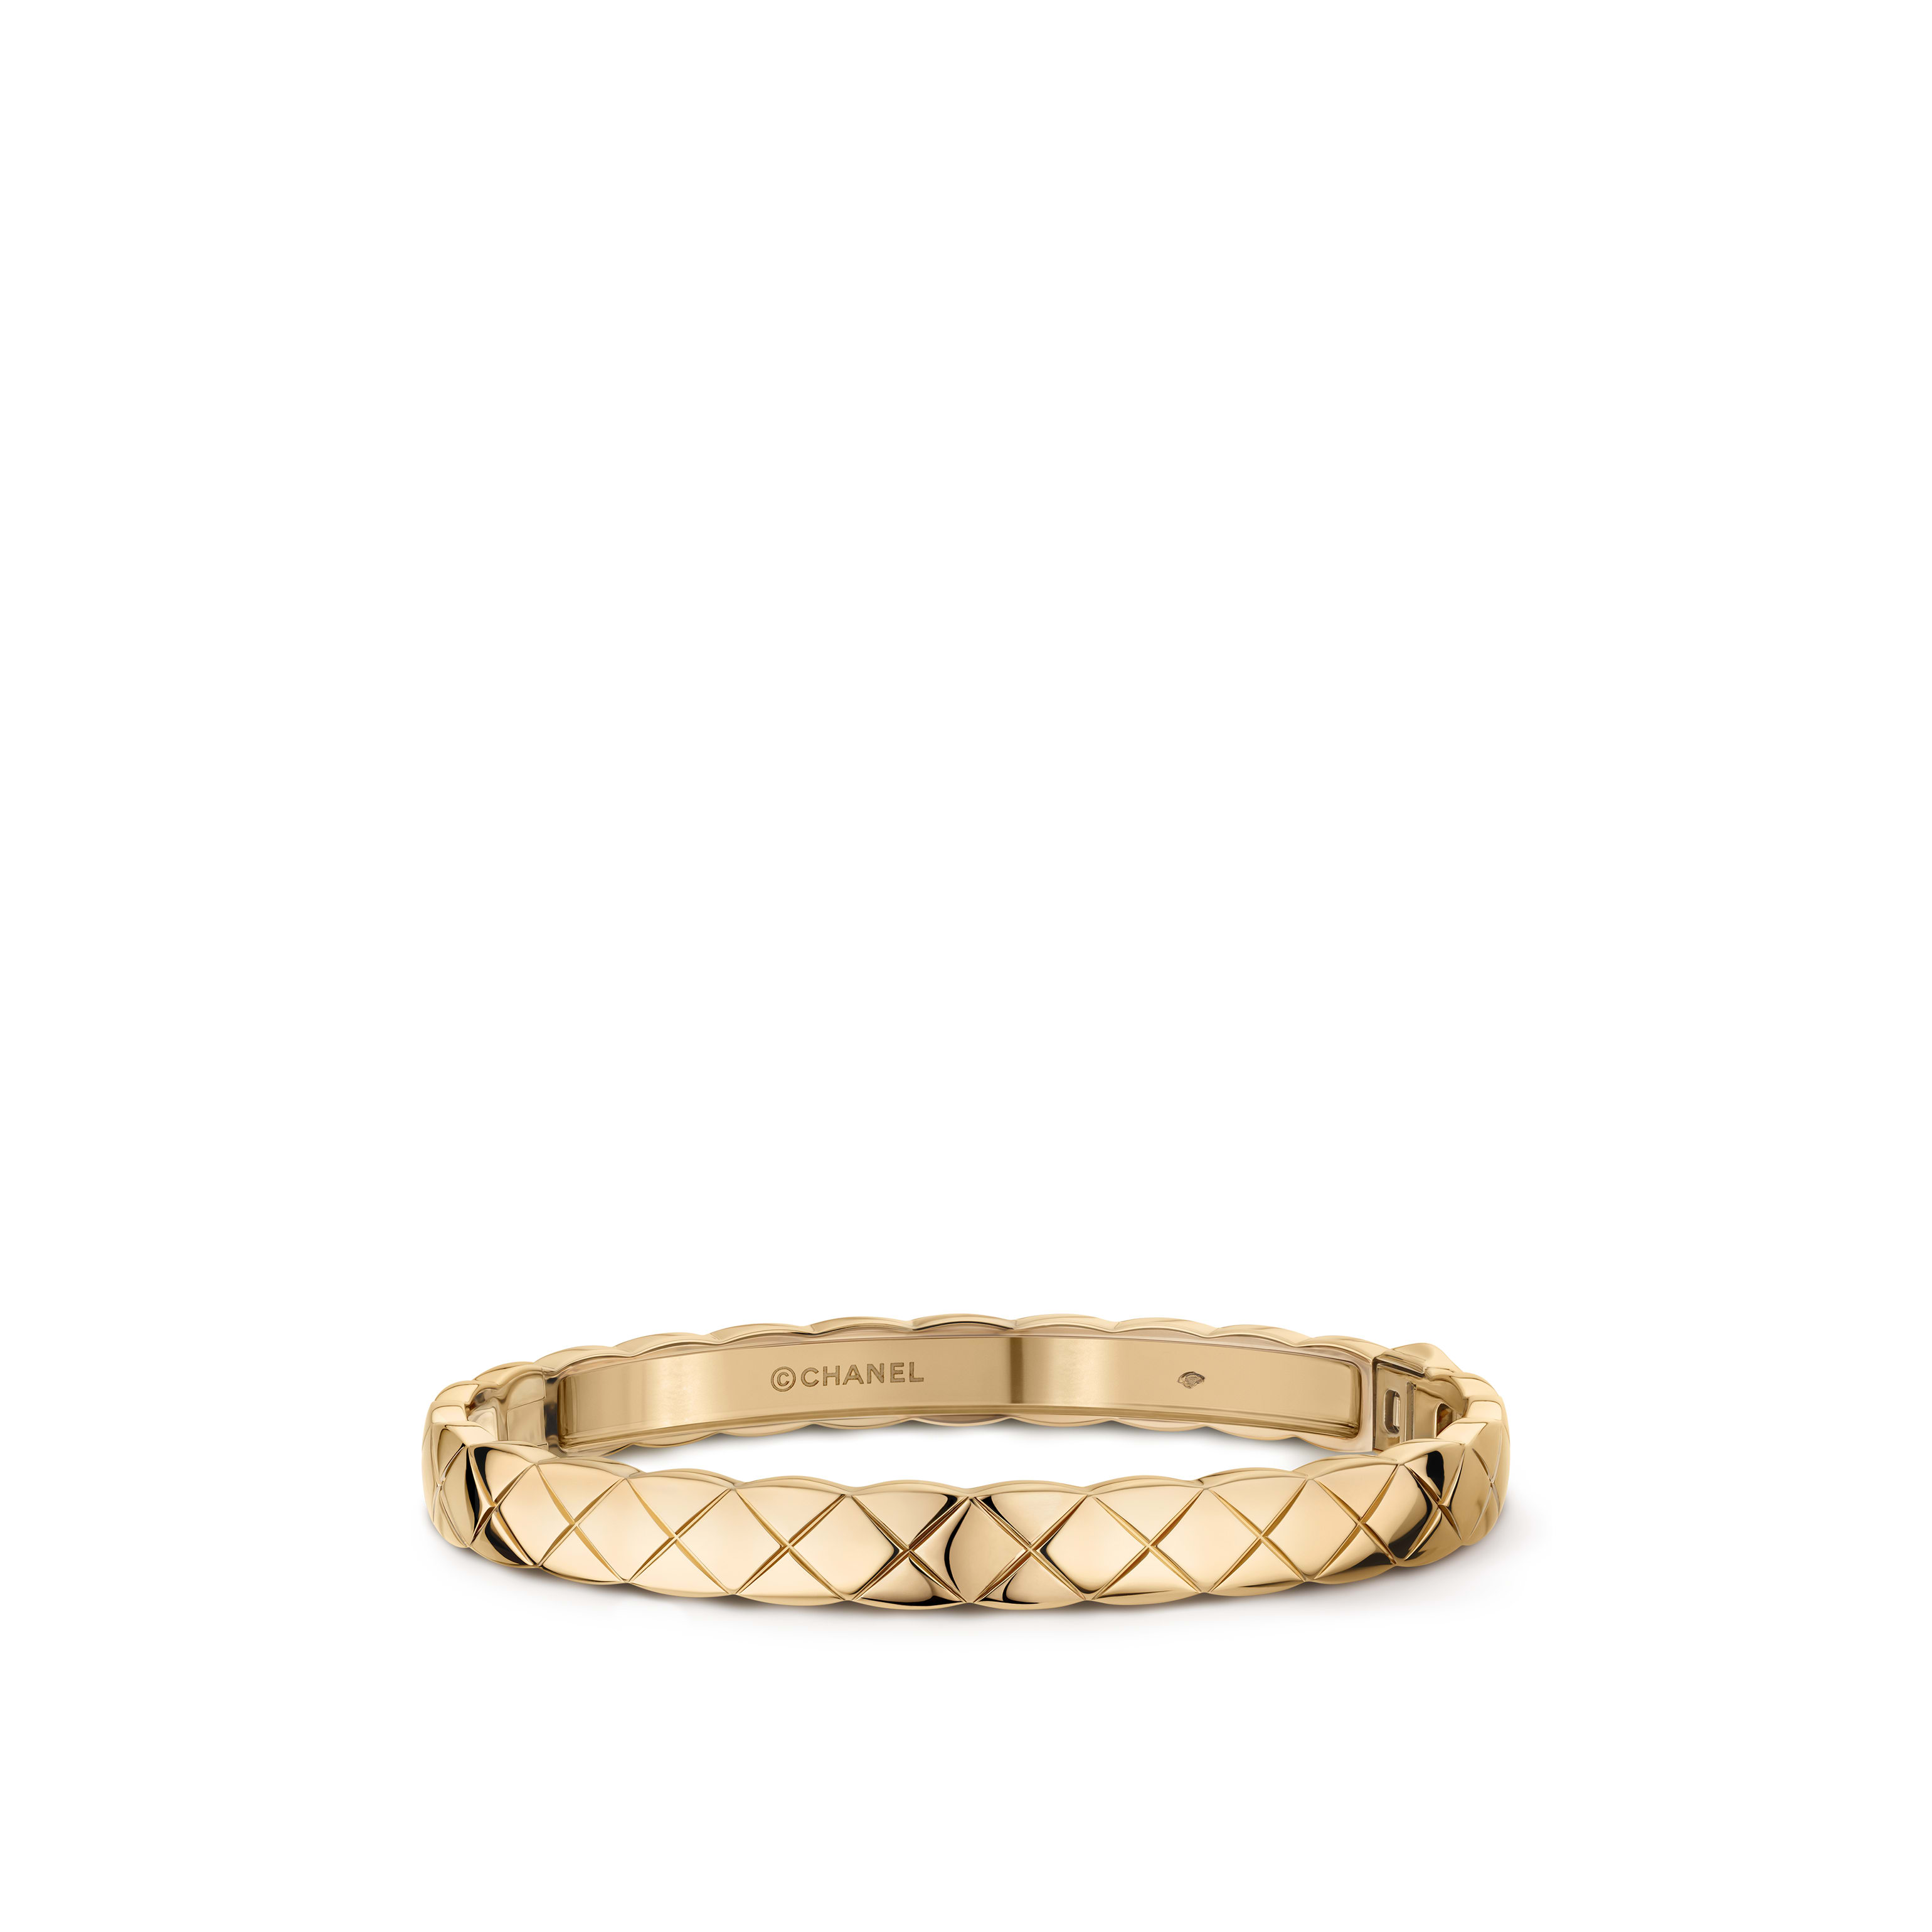 Coco Crush bracelet - Quilted motif, 18K BEIGE GOLD - CHANEL - Default view - see standard sized version